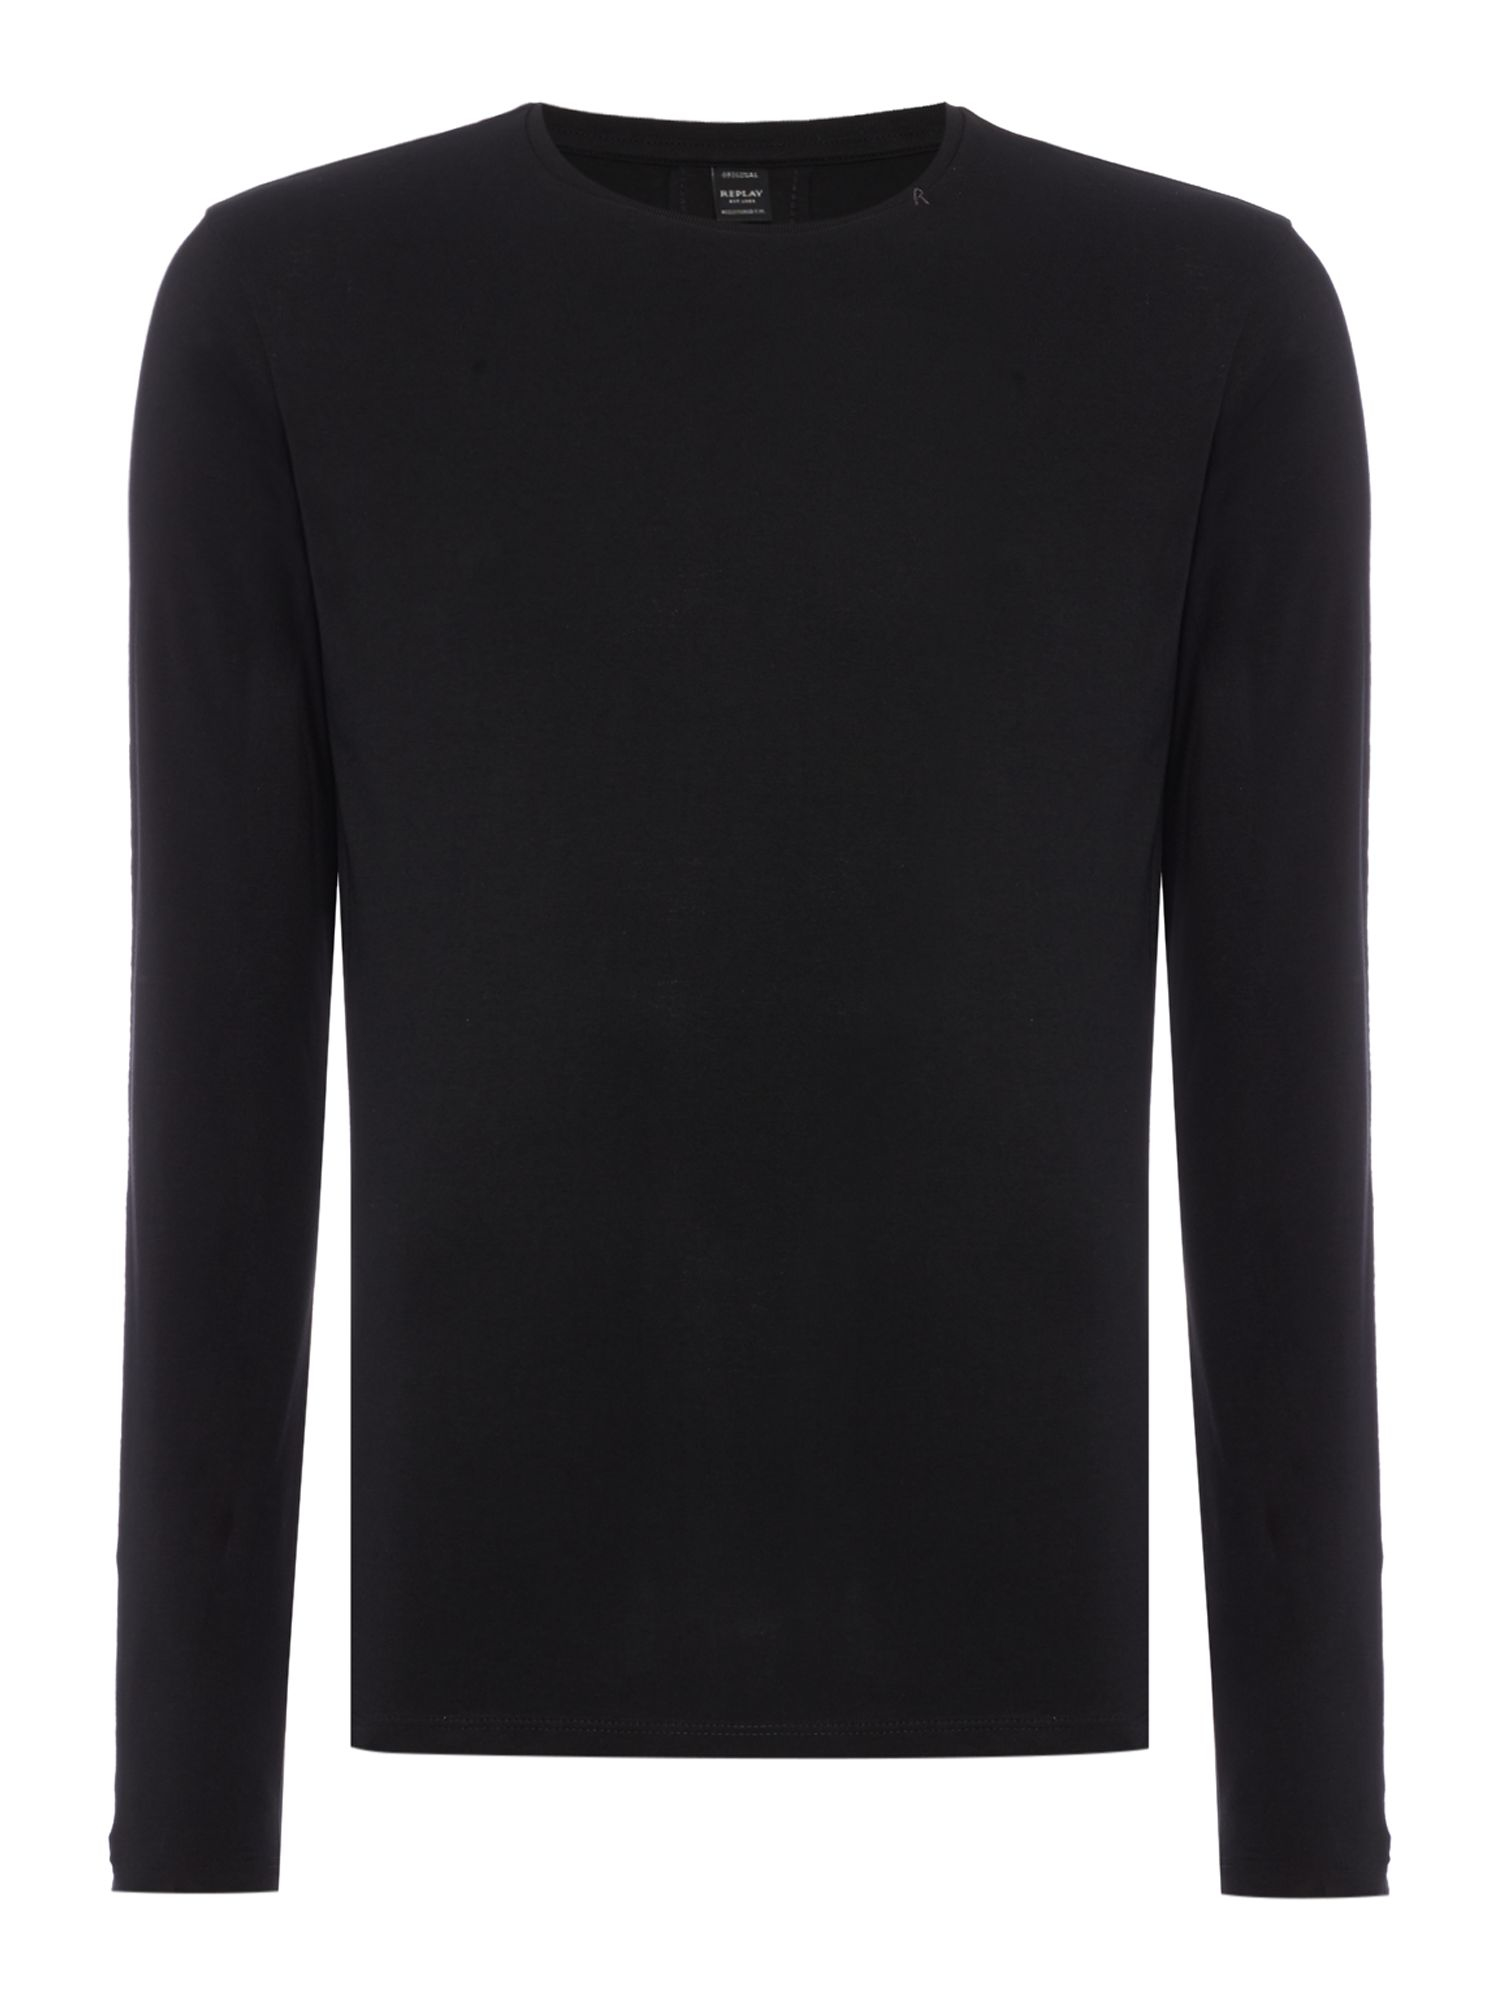 Lyst replay printed long sleeve t shirt in black for men for Long sleeve t shirt printing